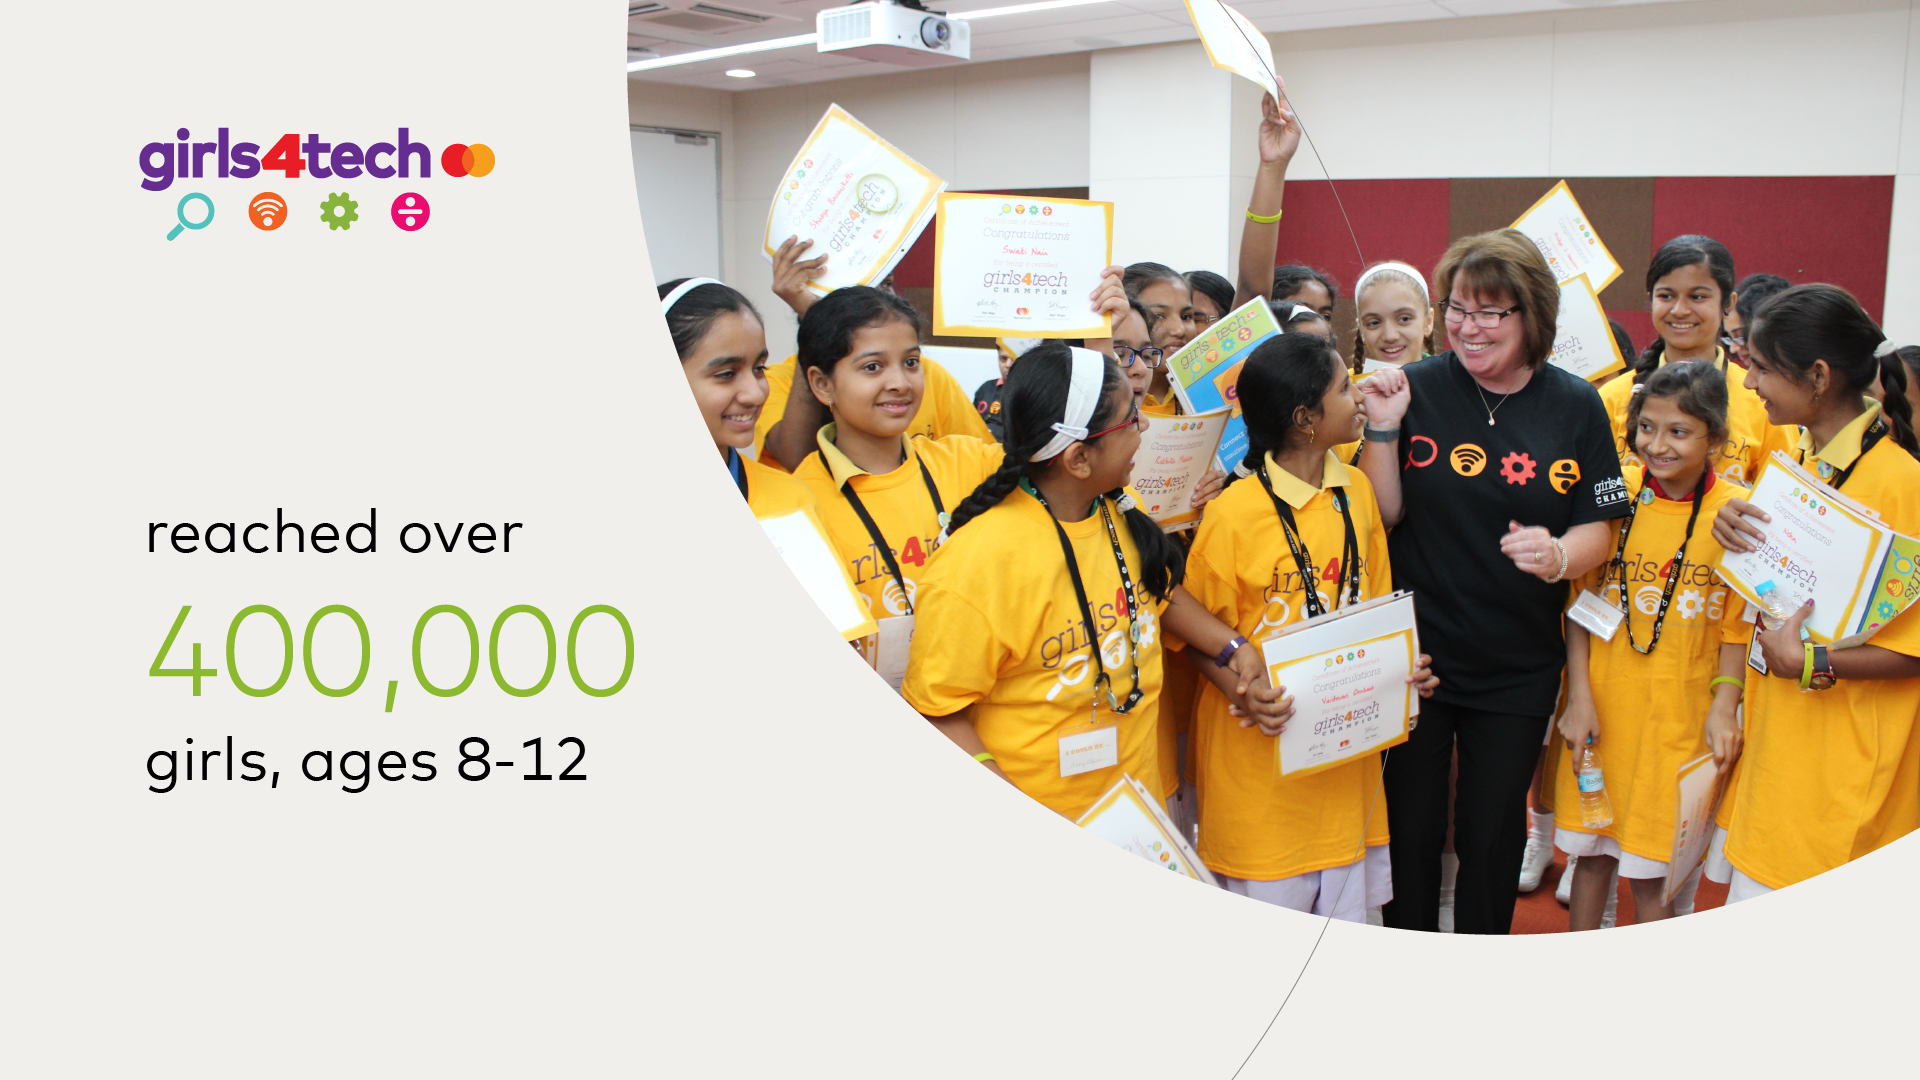 Mastercard commits to reaching 1m girls globally by 2025 through STEM